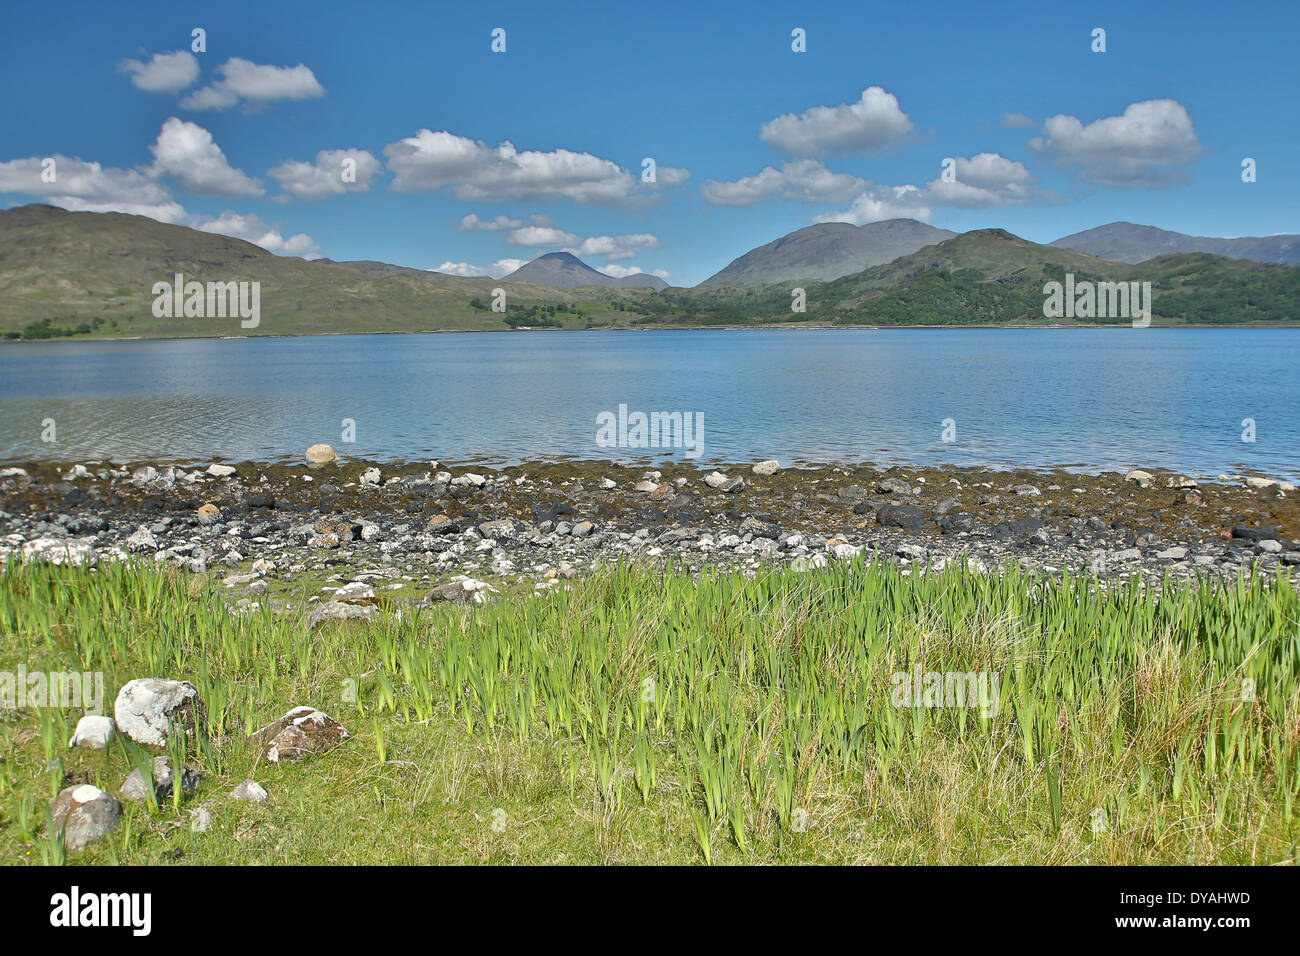 View taken along the shoreline @ Loch Spelve, Isle Of Mull with Ben More in the distant background. - Stock Image